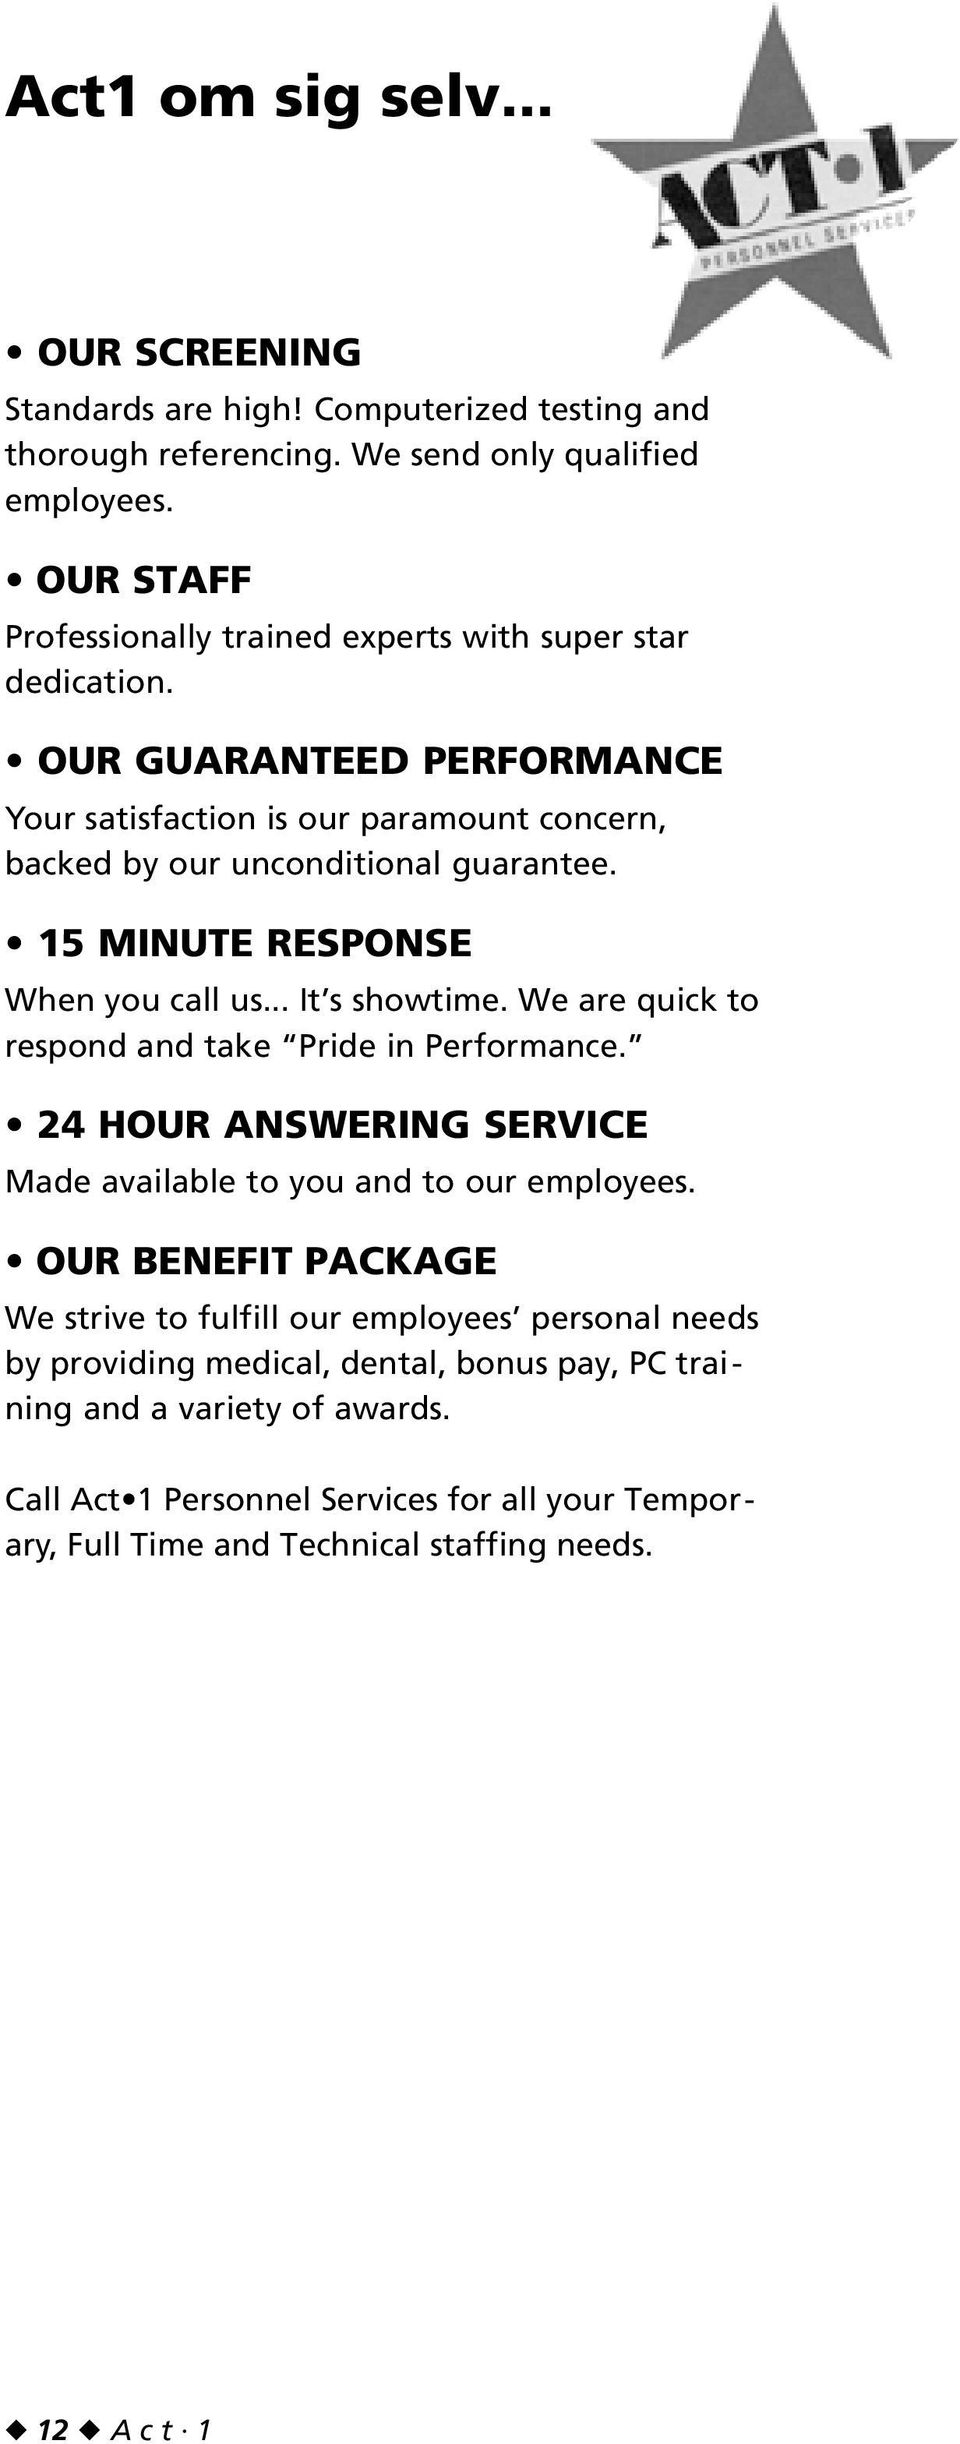 15 MINUTE RESPONSE When you call us... It s showtime. We are quick to respond and take Pride in Performance. 24 HOUR ANSWERING SERVICE Made available to you and to our employees.